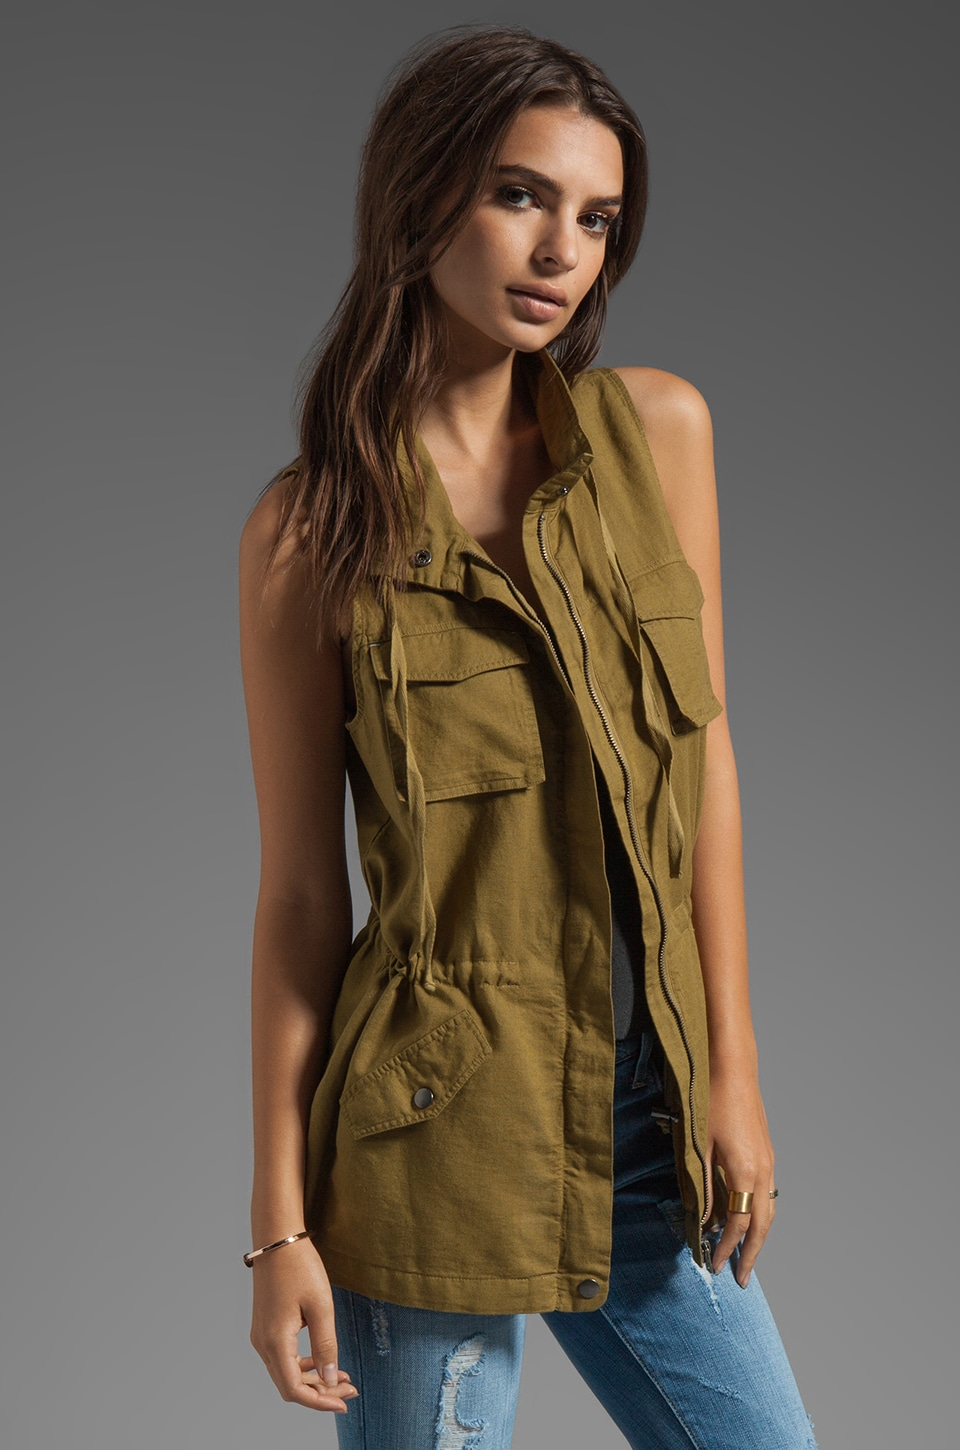 C&C California Linen Cotton Safari Vest in Nutria